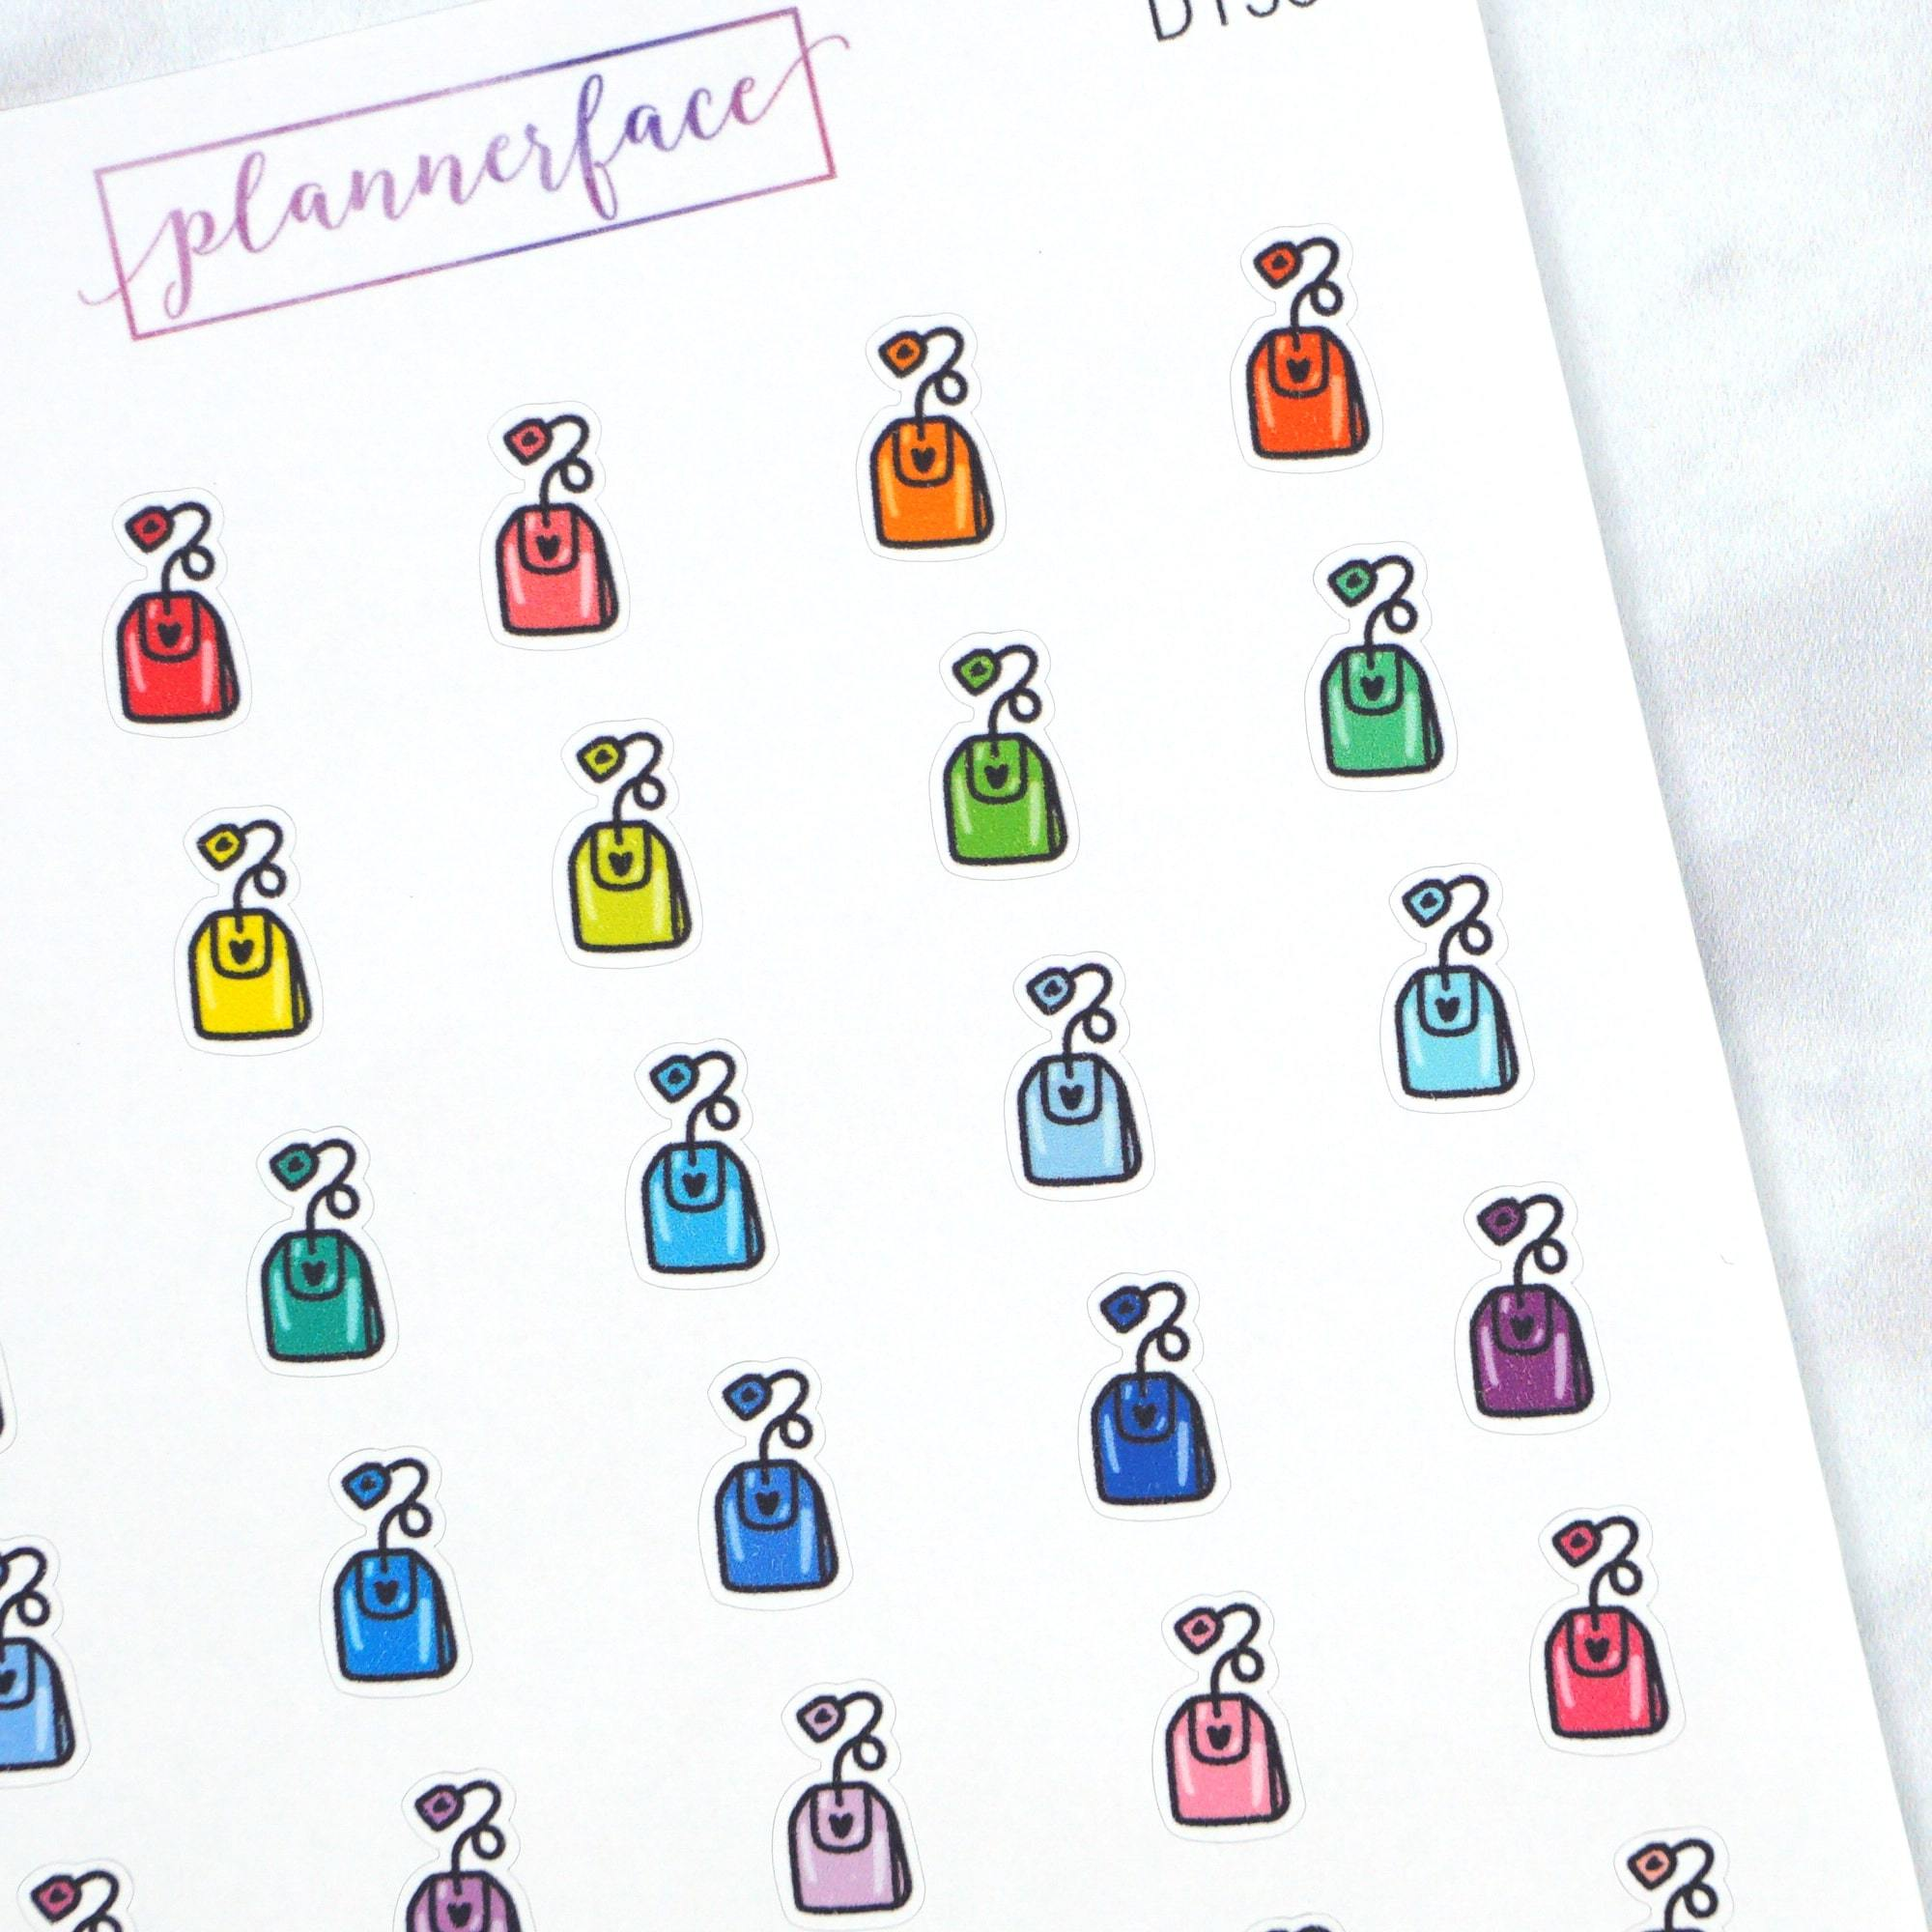 Plannerface Tea Bag Multicolour Doodles Planner Stickers